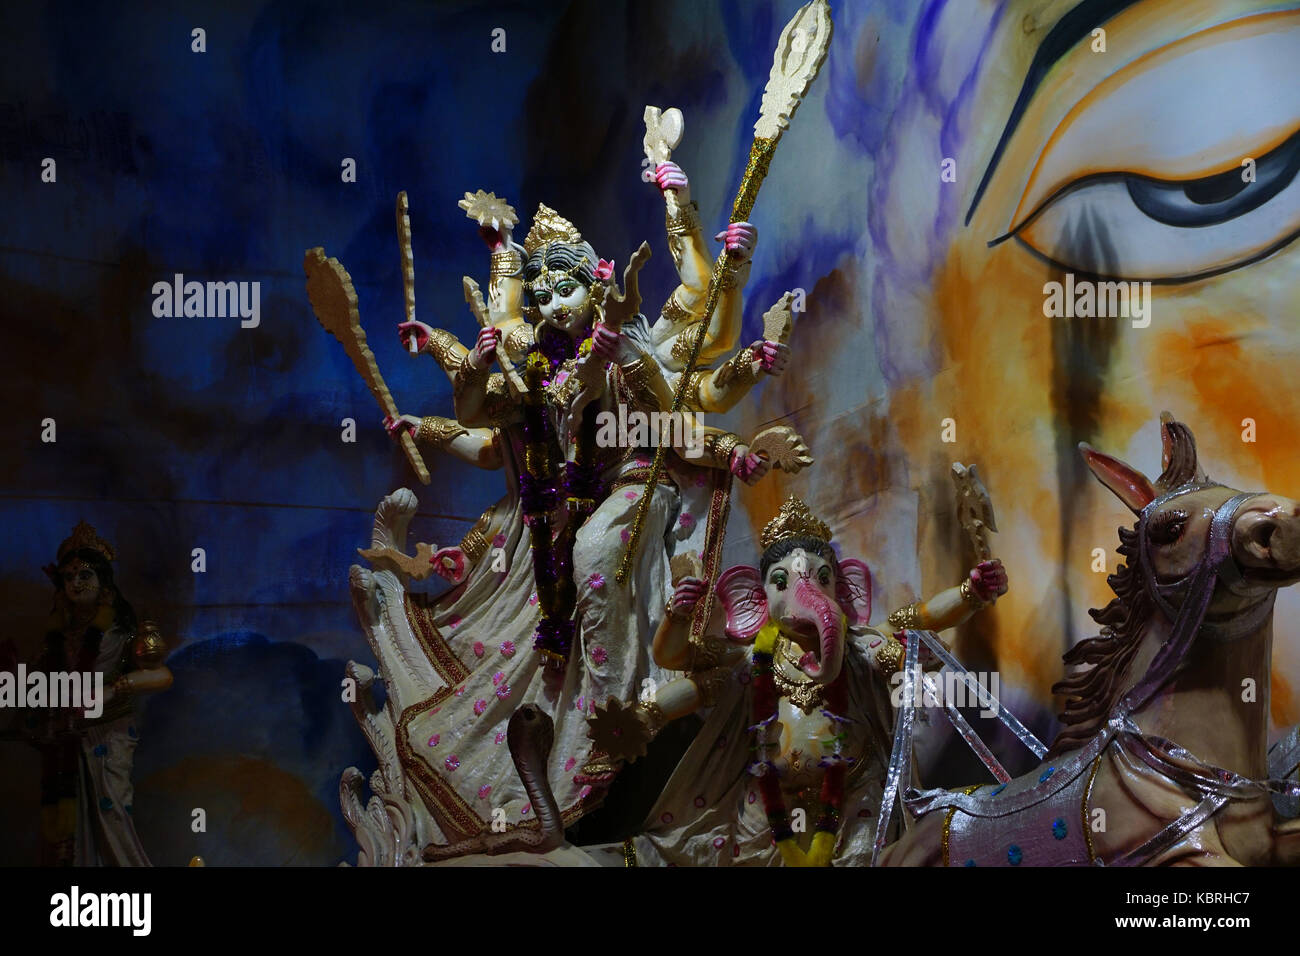 The  magnificent Idol Goddess Durga  On the occasion of Durga Puja Festival - Stock Image